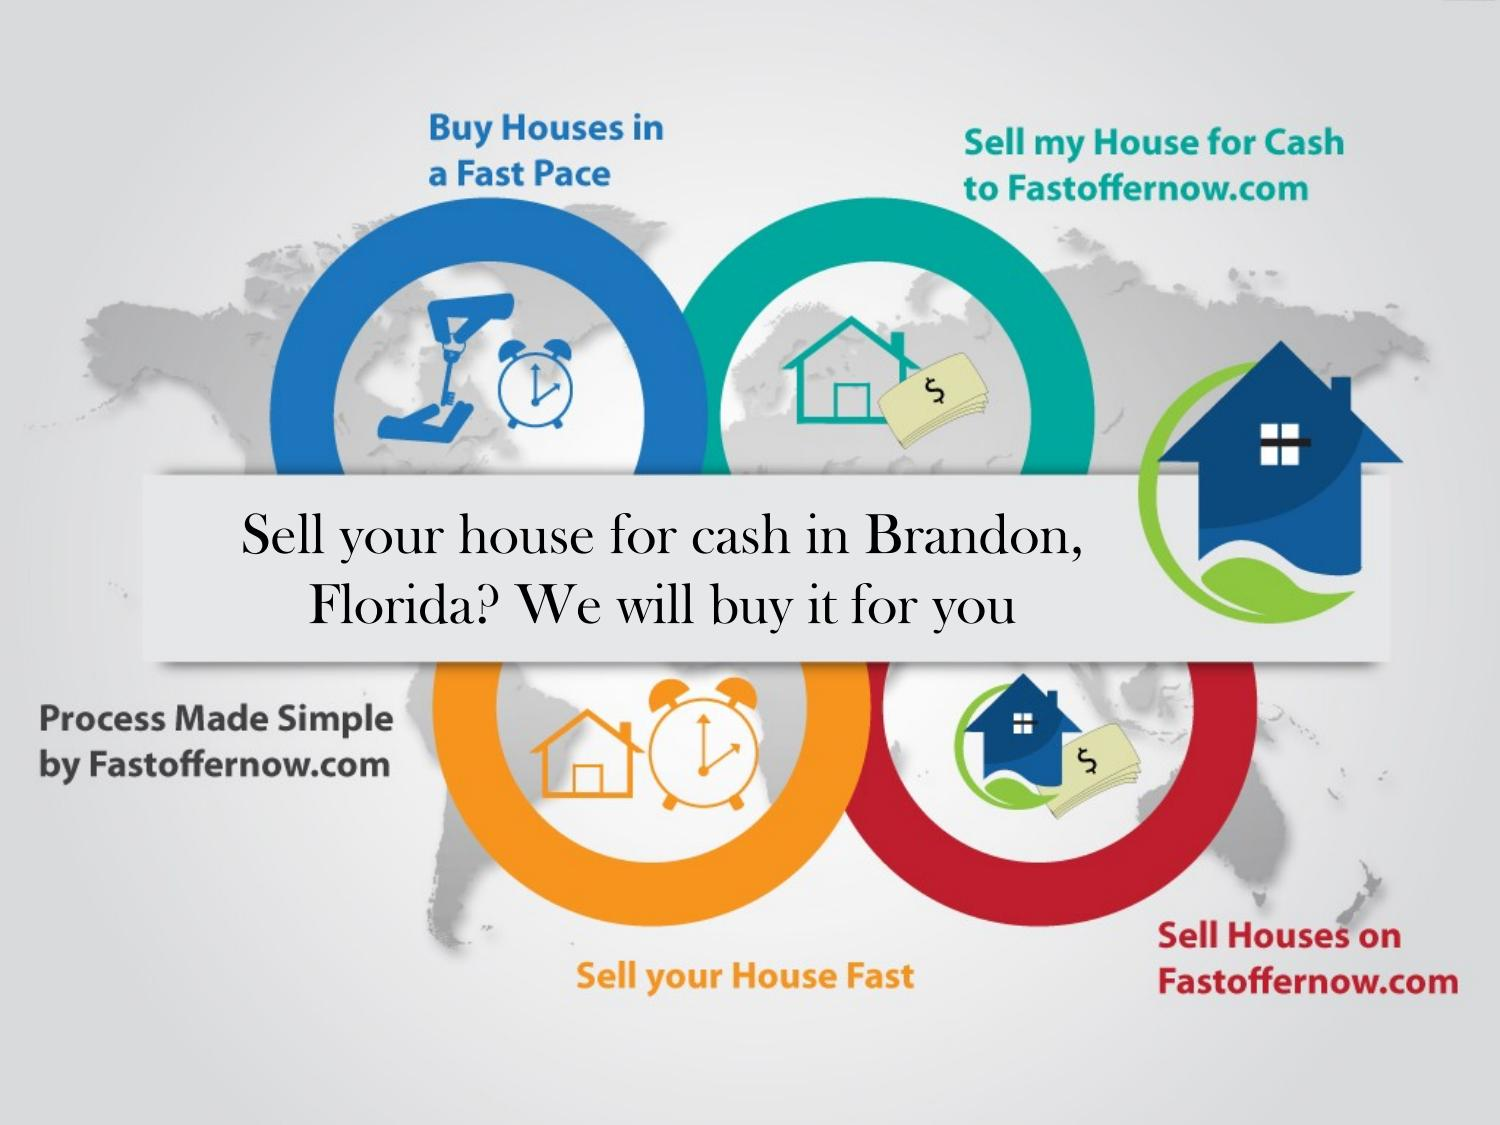 Sell your house for cash in brandon, florida we will buy it for you ...